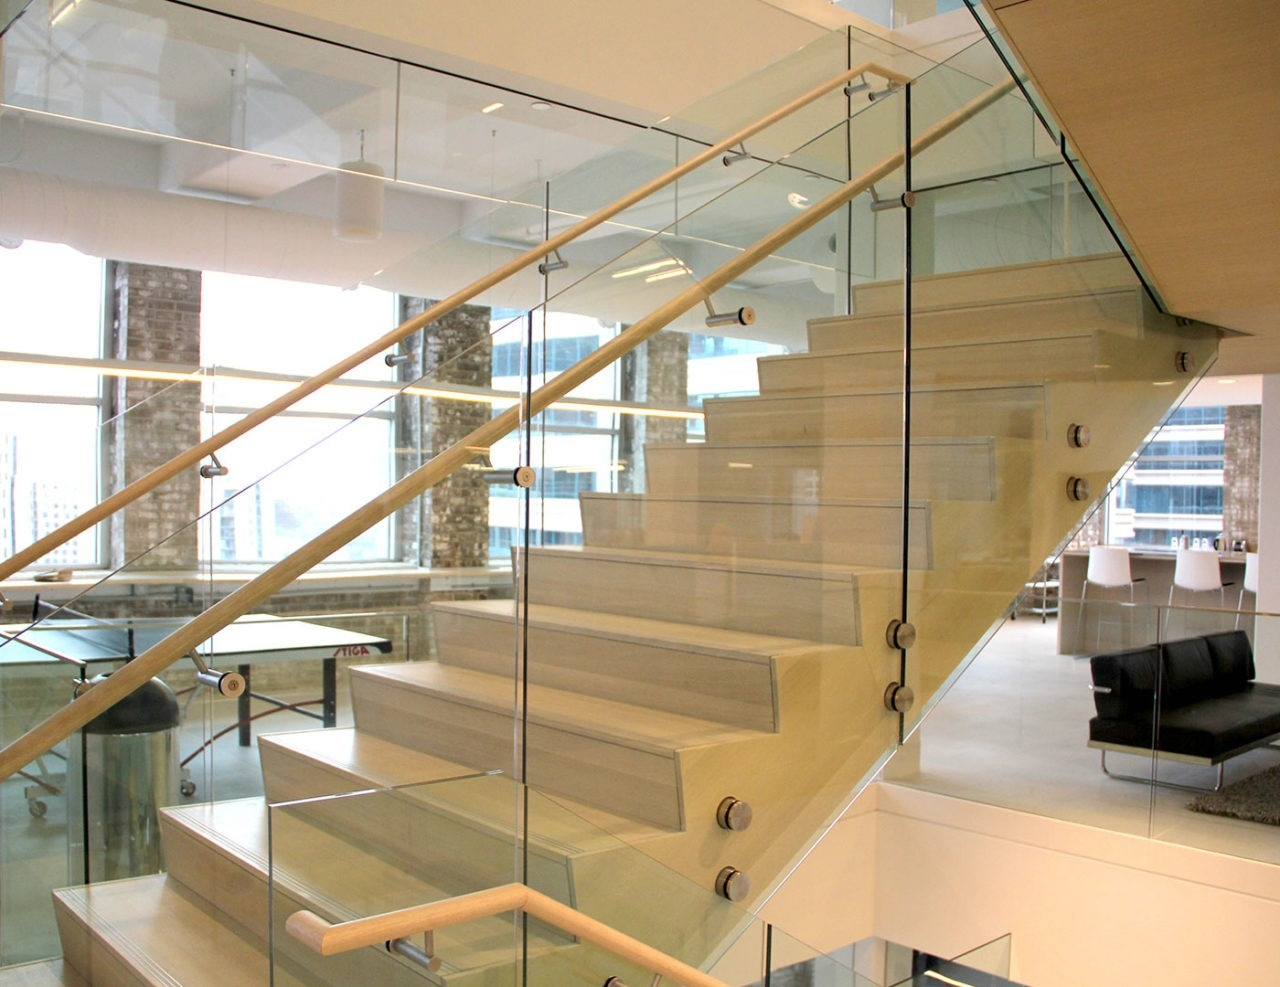 Fascia Node Mounted Glass Railing Trex Commercial Products   Glass Balustrade Stairs Near Me   Railing Systems   Frameless Glass   Deck Railing   Handrails   Metal